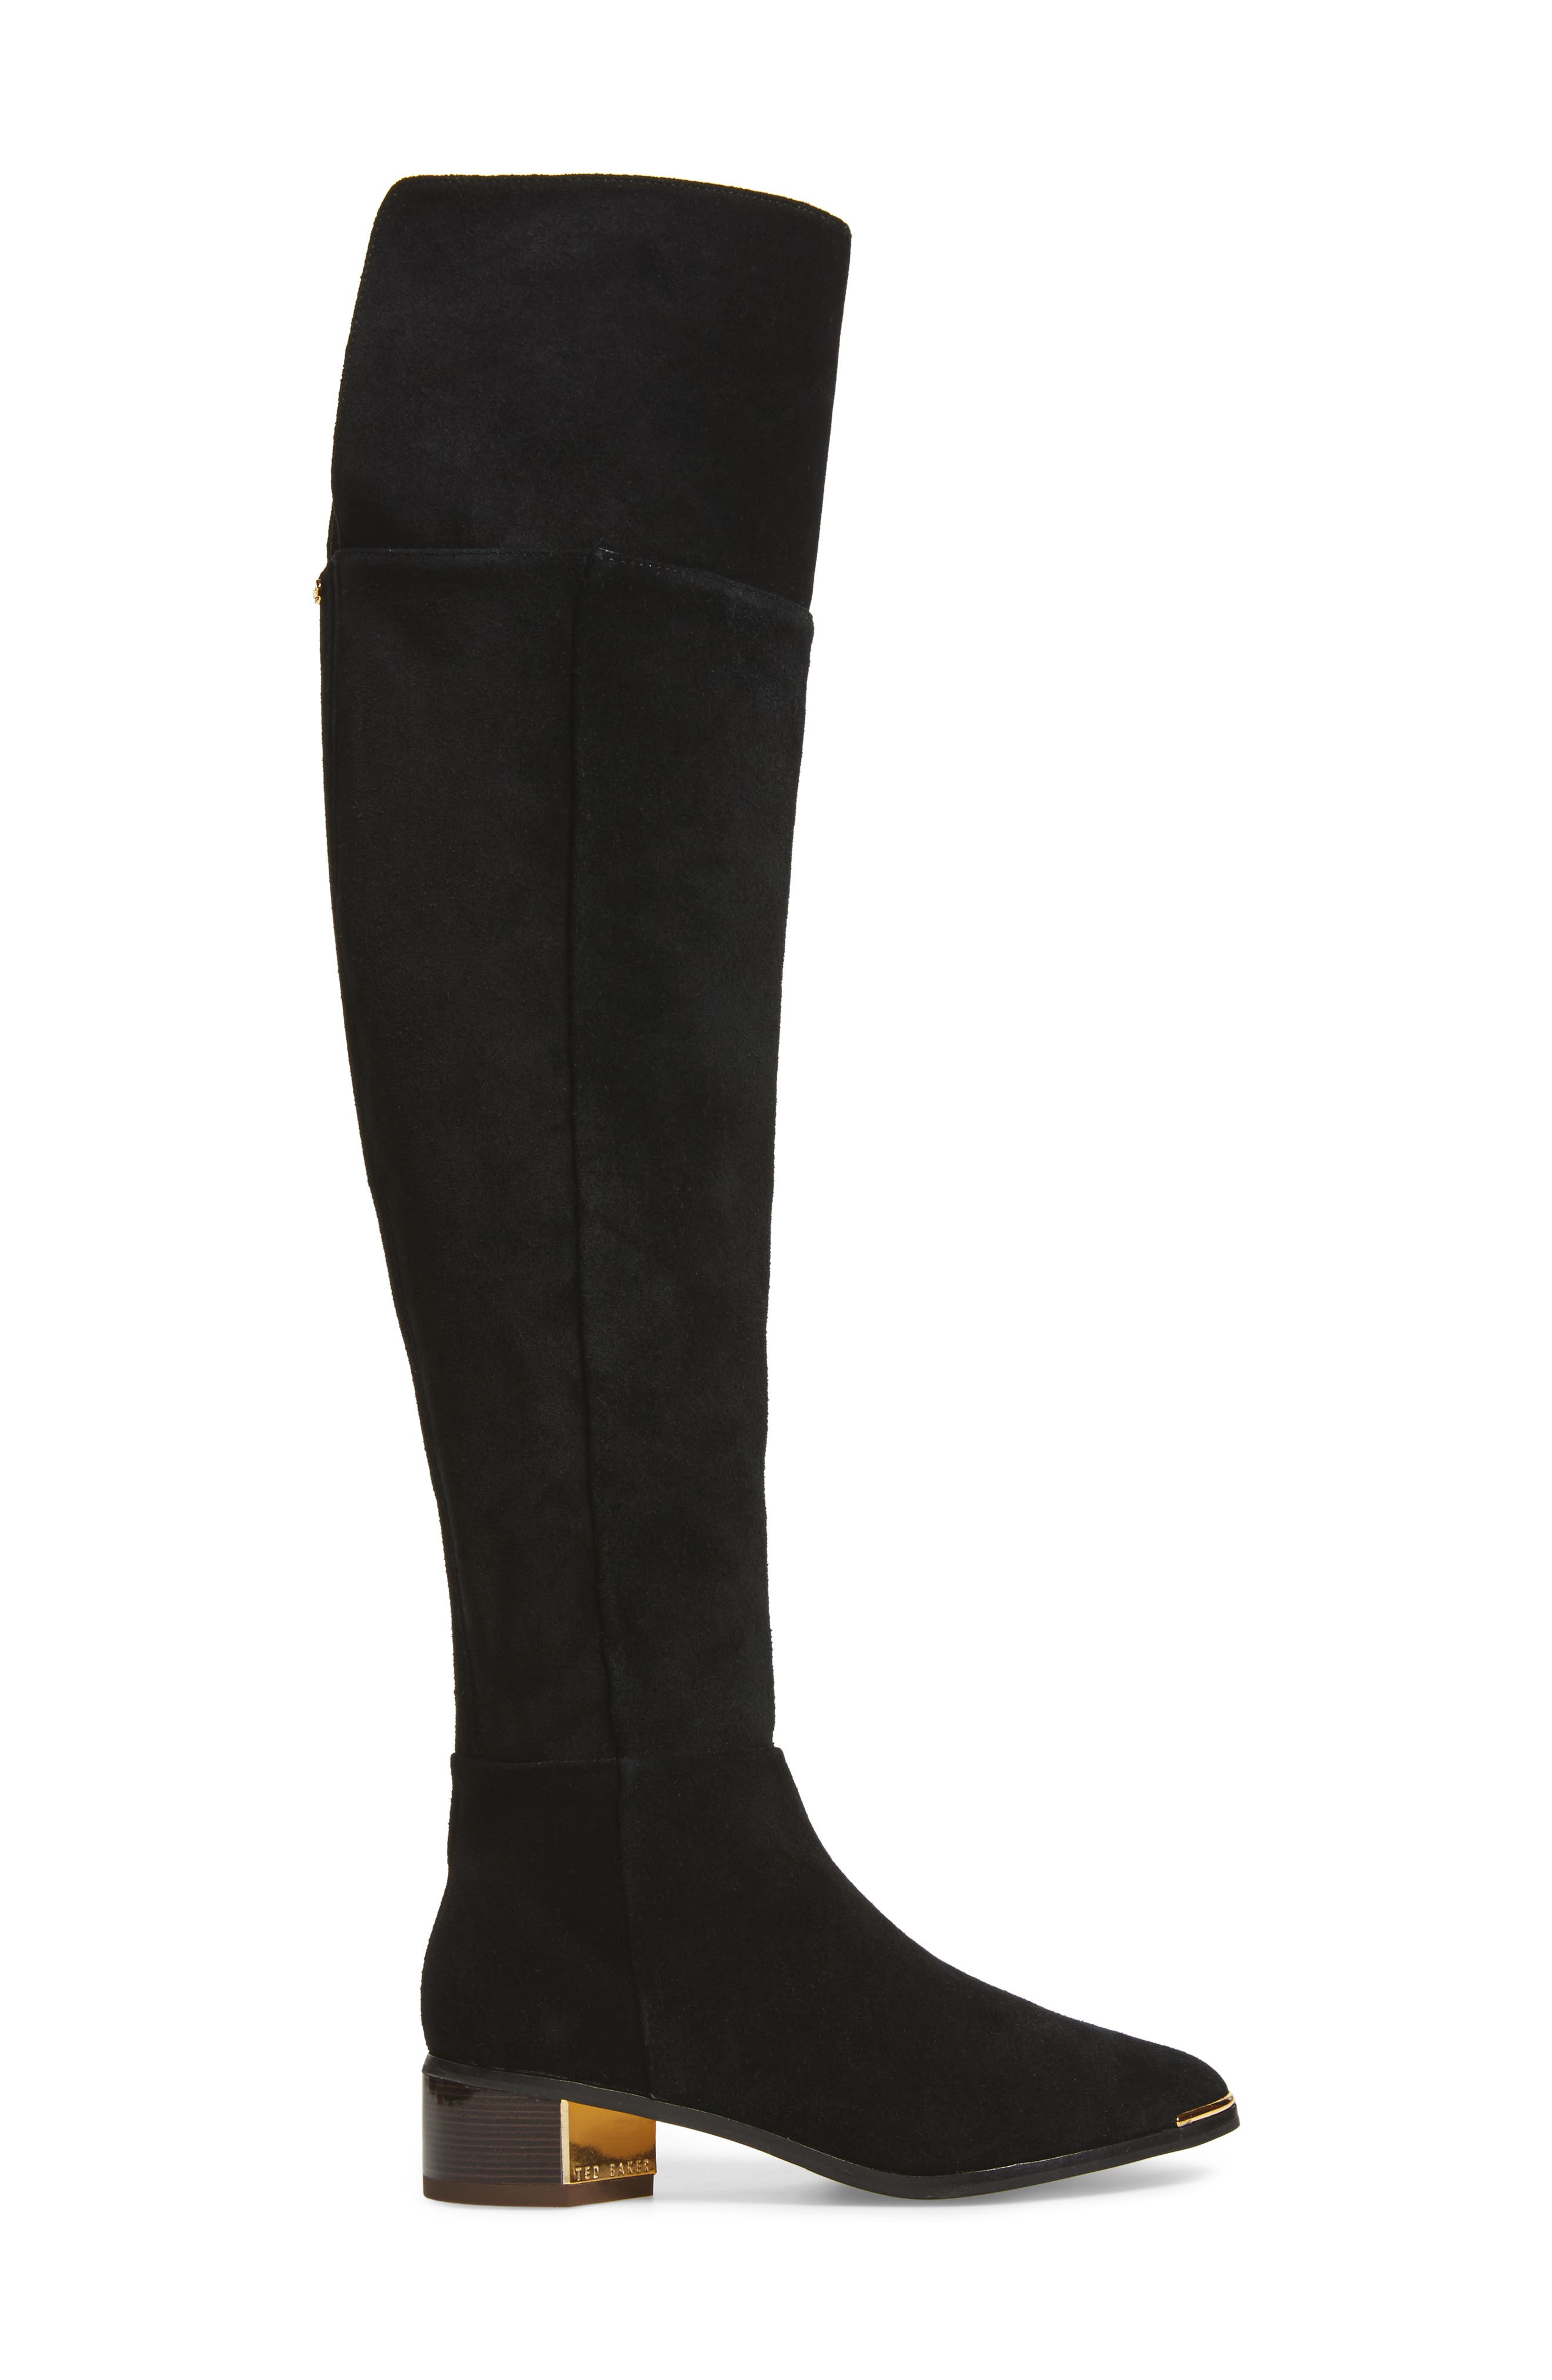 Nayomie Over the Knee Boot,                             Alternate thumbnail 3, color,                             001